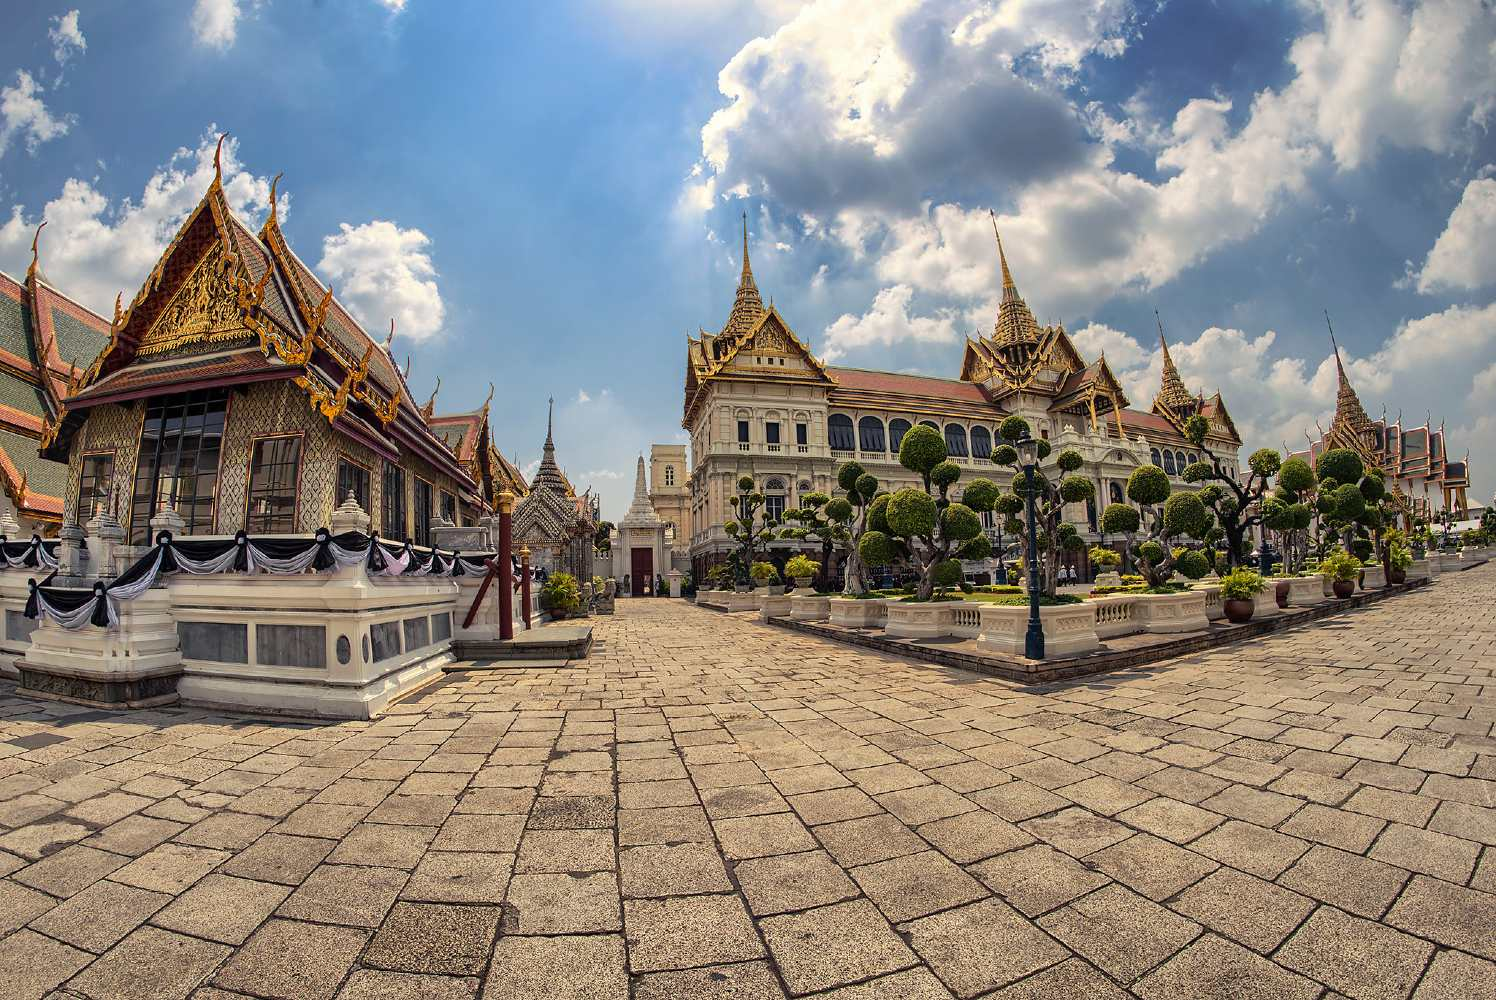 Part of the Grand Palace complex